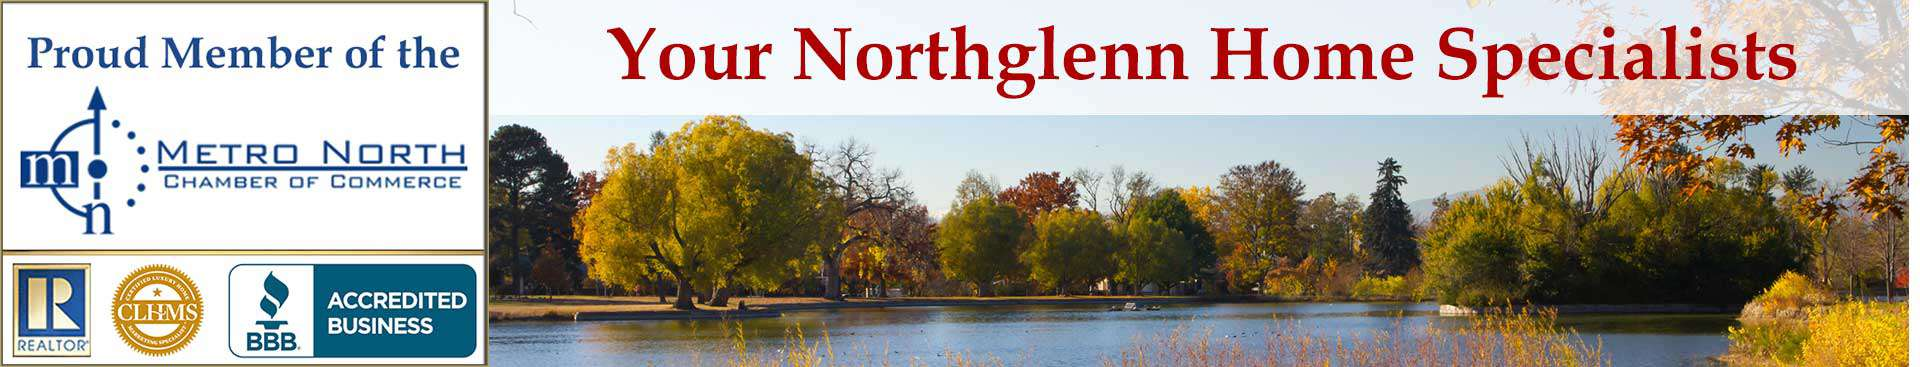 Northglenn CO Organizational Banner